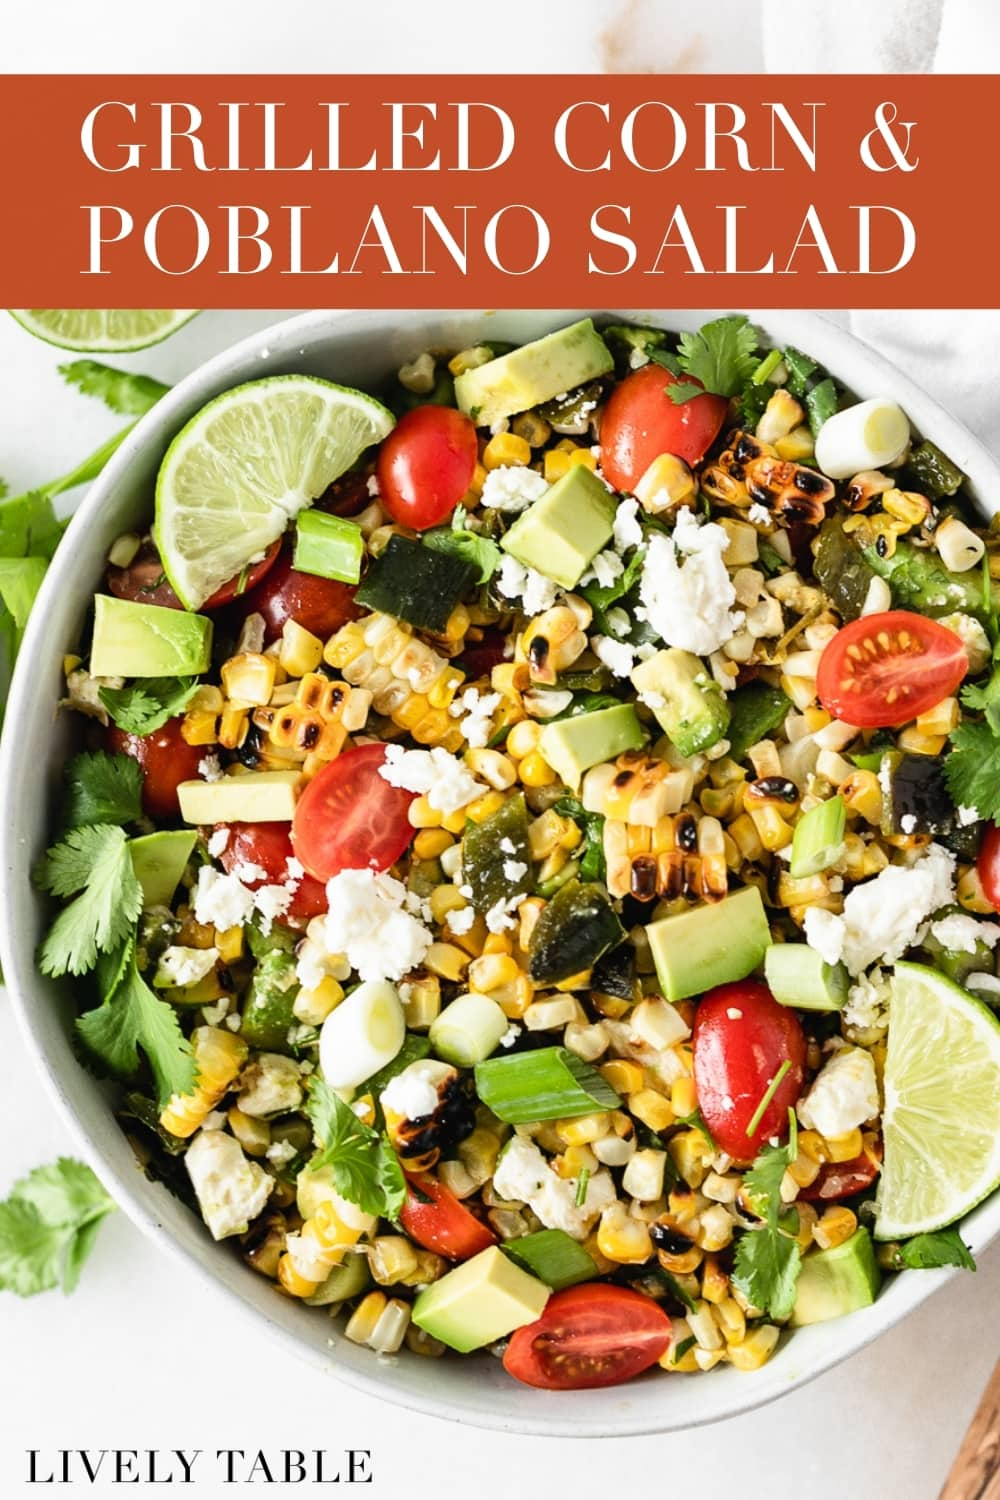 This grilled corn summer salad features grilled fresh corn and poblanos with fresh tomatoes and avocado for a delicious summer salad that's perfect for cookouts! #glutenfree #vegetarian #grilledcorn #summersalad #under30 #easy #nonboringlunch #grilledrecipes